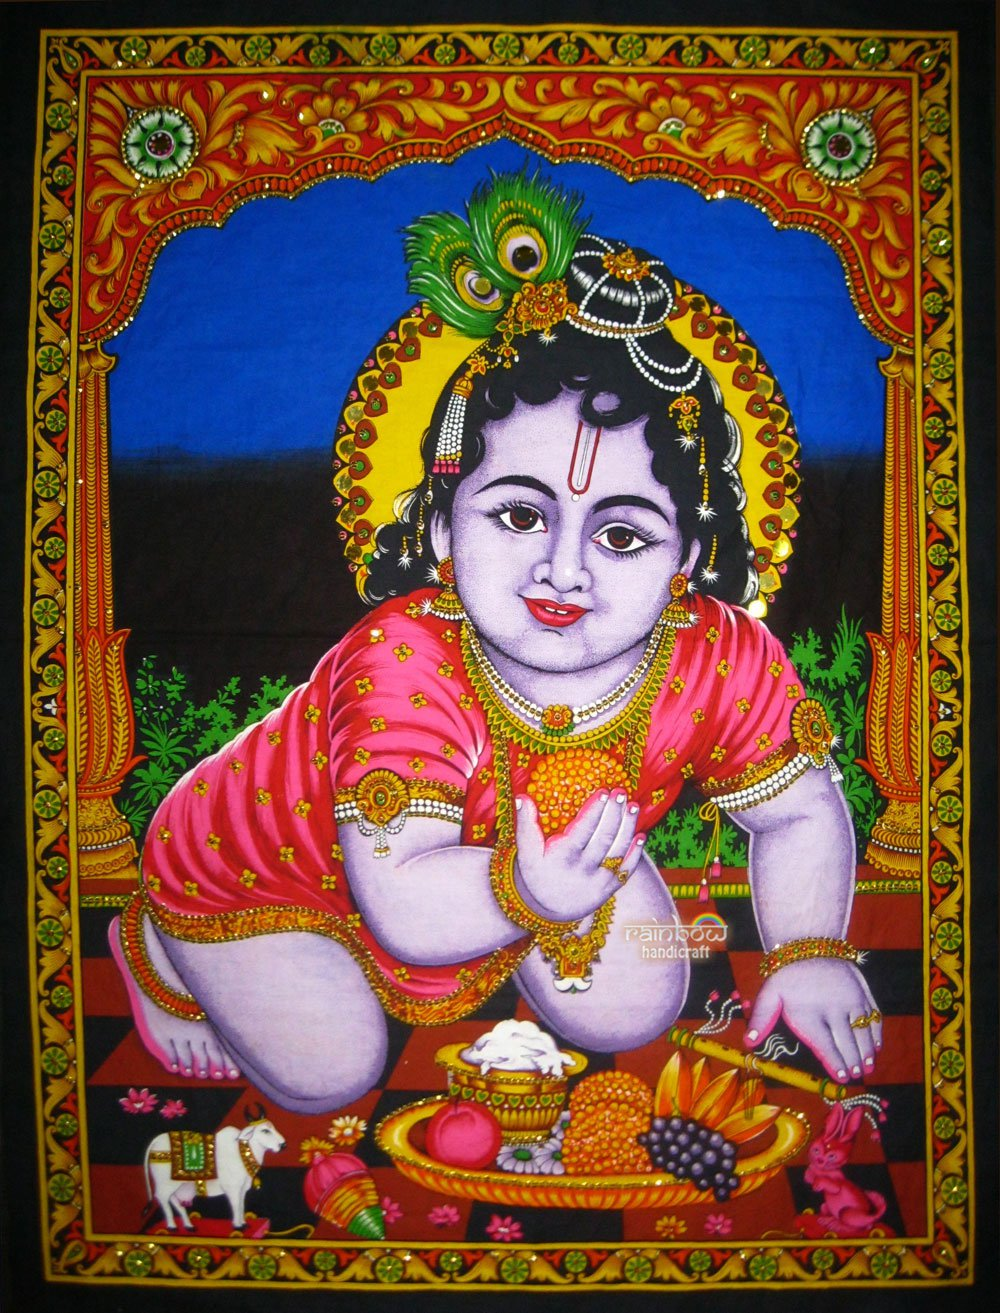 hindu baby krishna sequin wall hanging batik tapestry ethnic decor vintage art